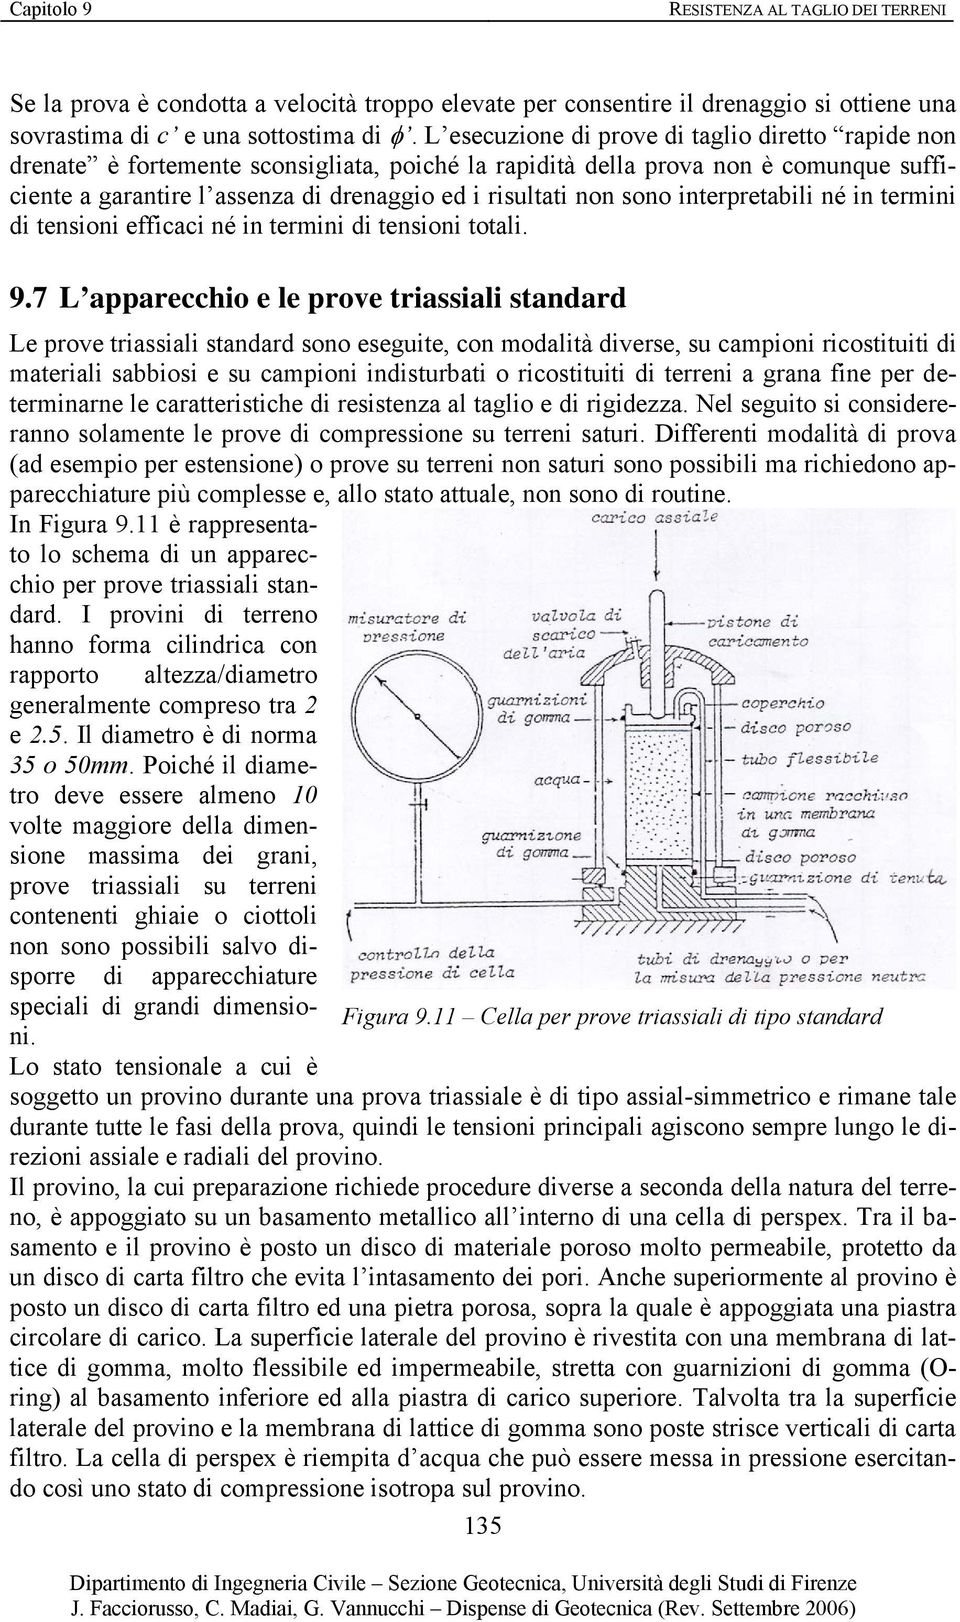 sono interpretabili né in termini di tensioni efficaci né in termini di tensioni totali. 9.